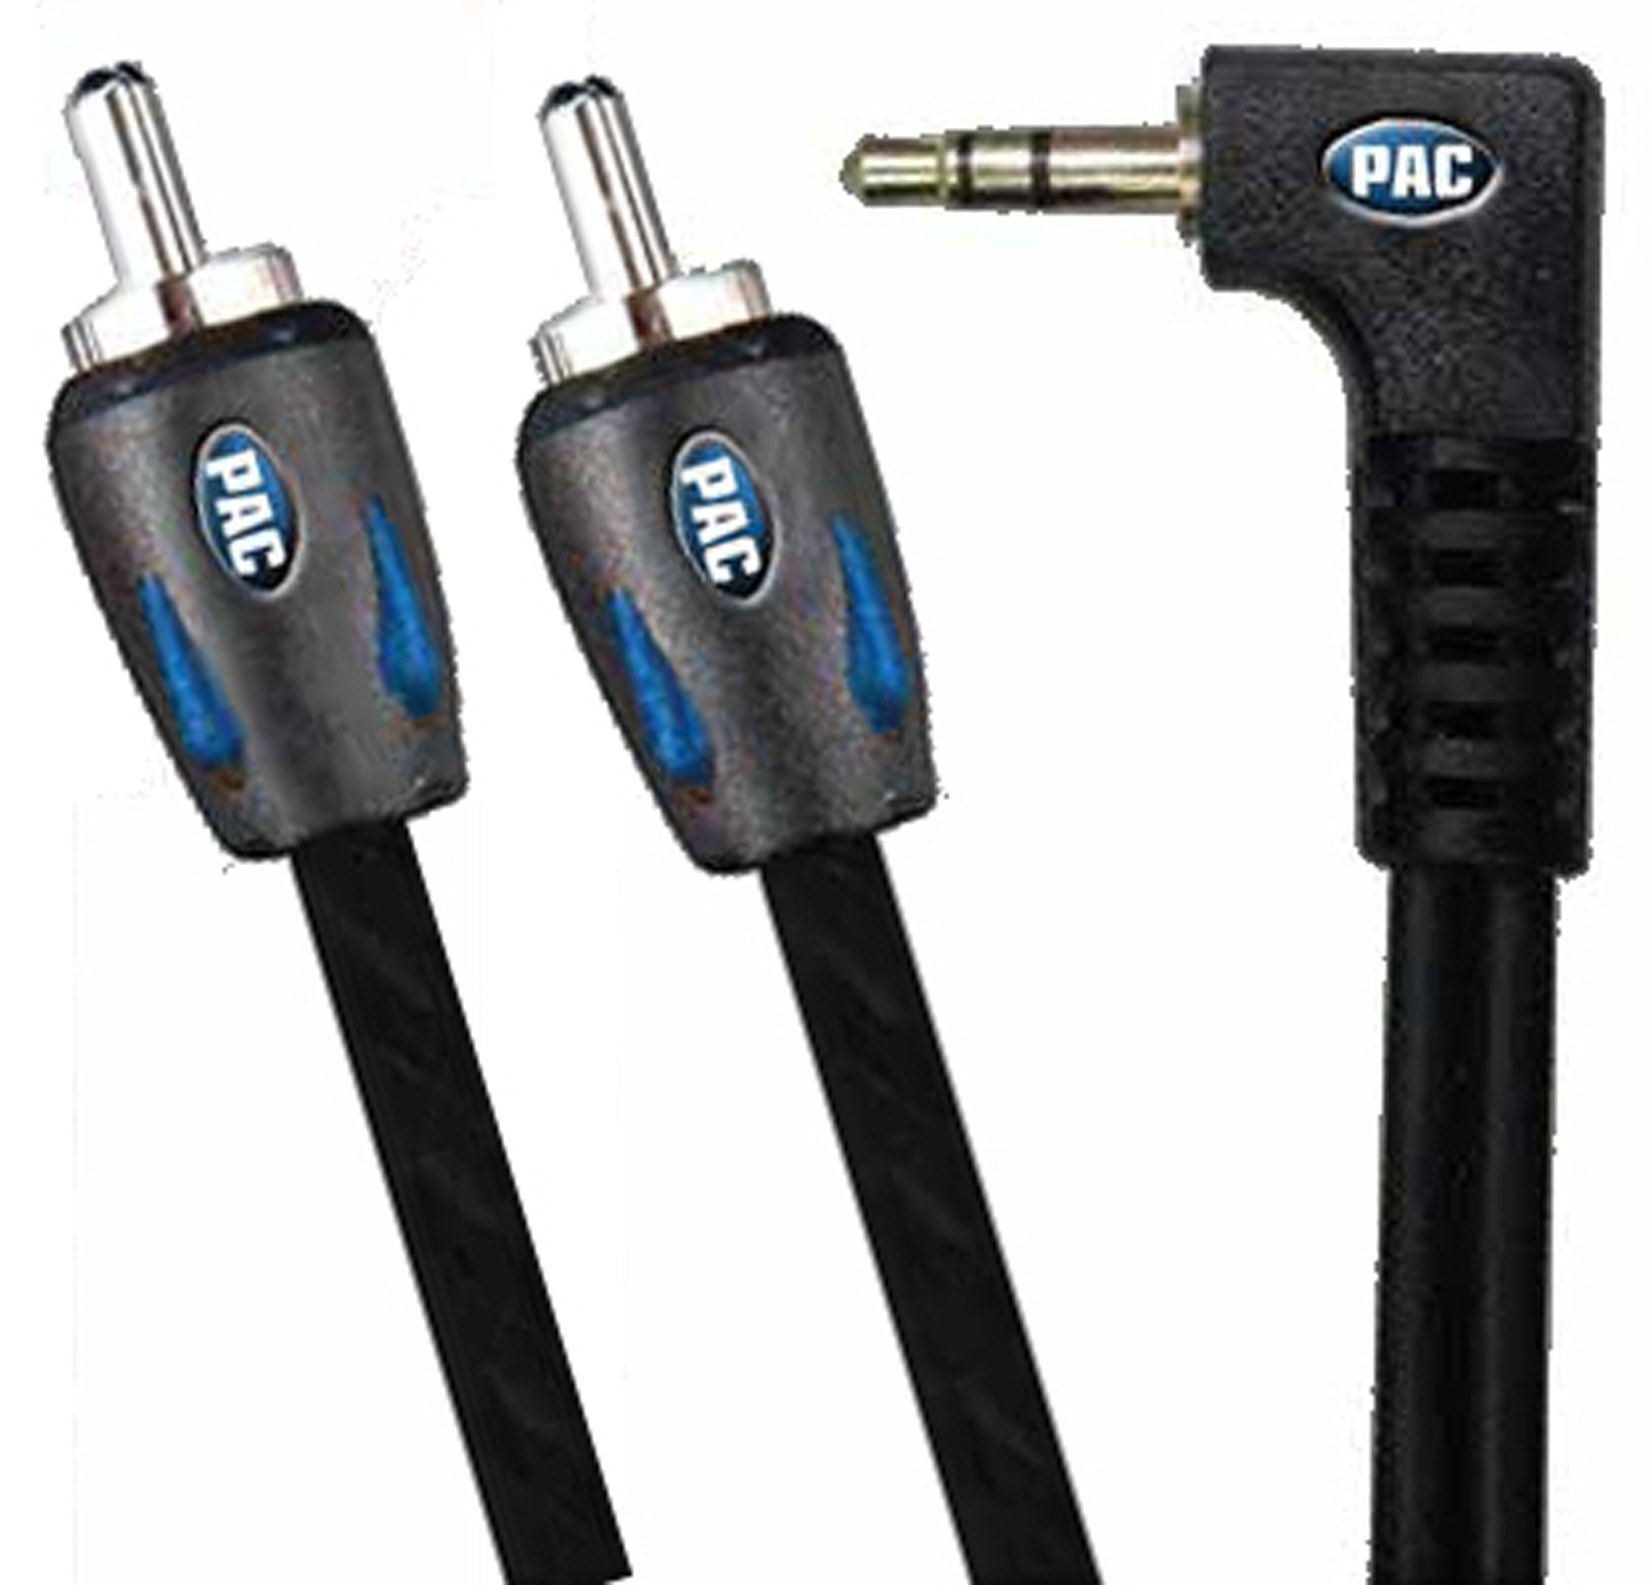 Pacific Accessory Rca/mini Phone Audio Cable - Rca/mini Phone For Audio Device - 6 Ft - Mini-phone Audio - Rca Audio (pir35)